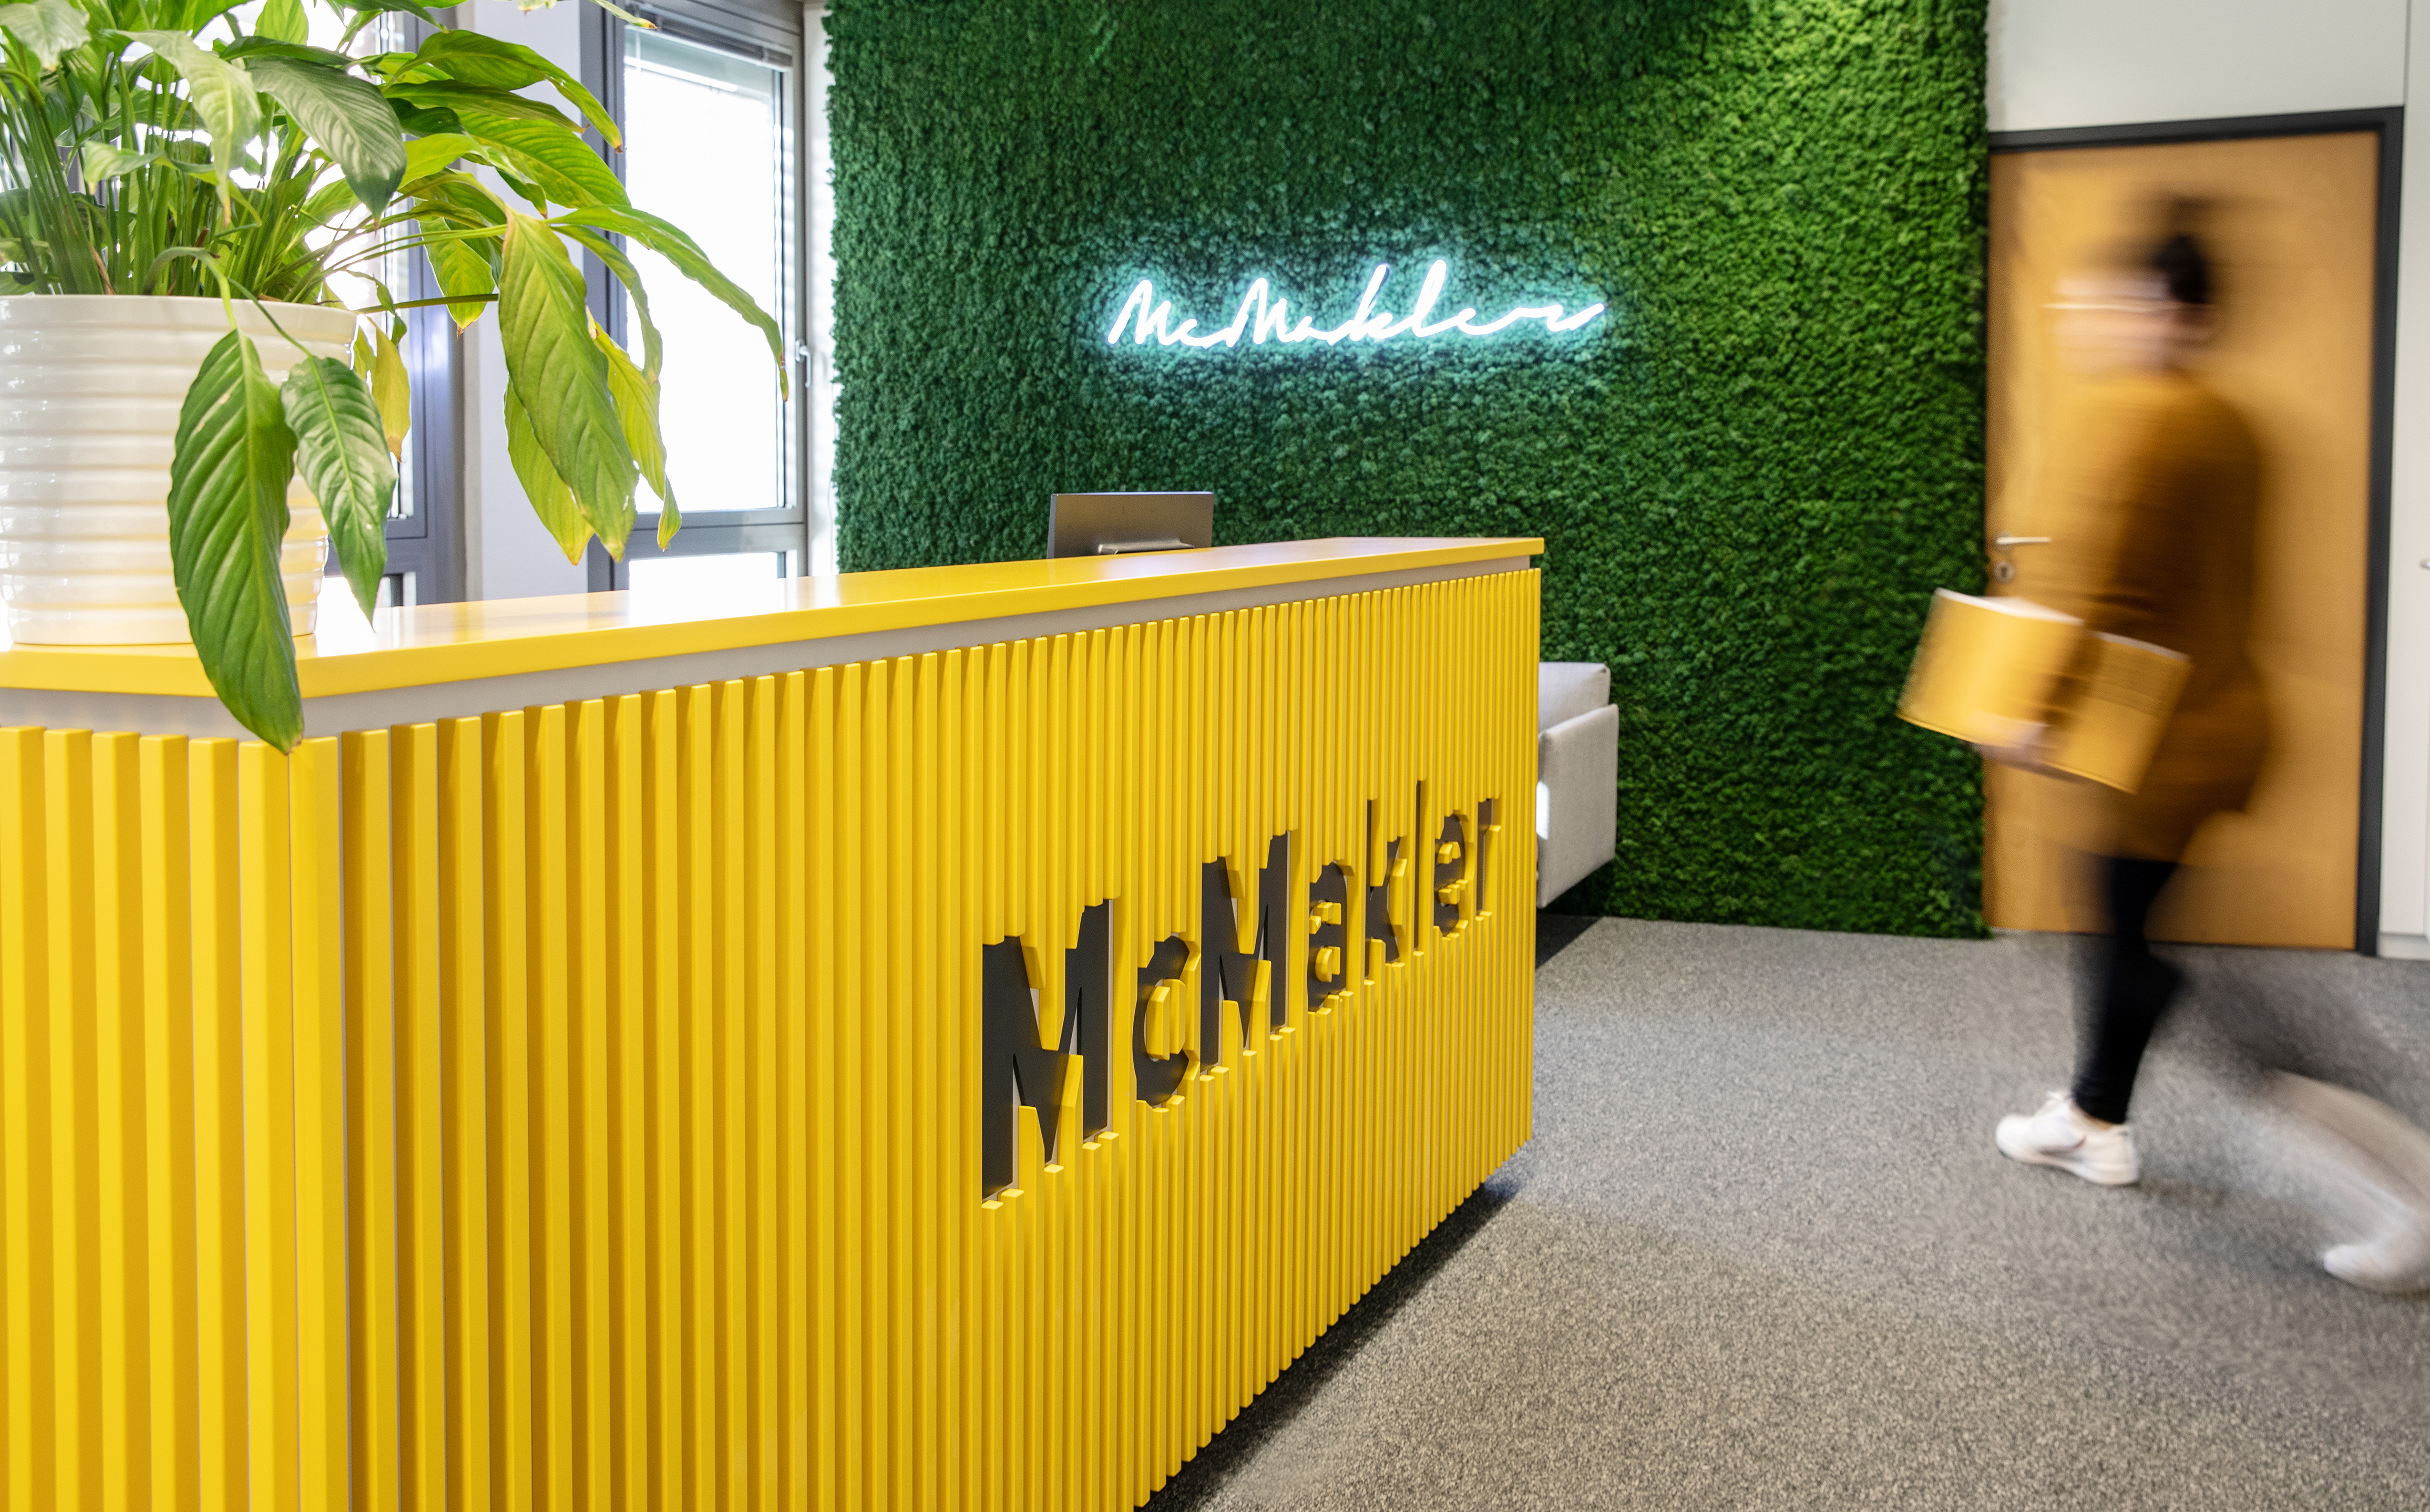 McMakler uses Circula since 2020 successfully